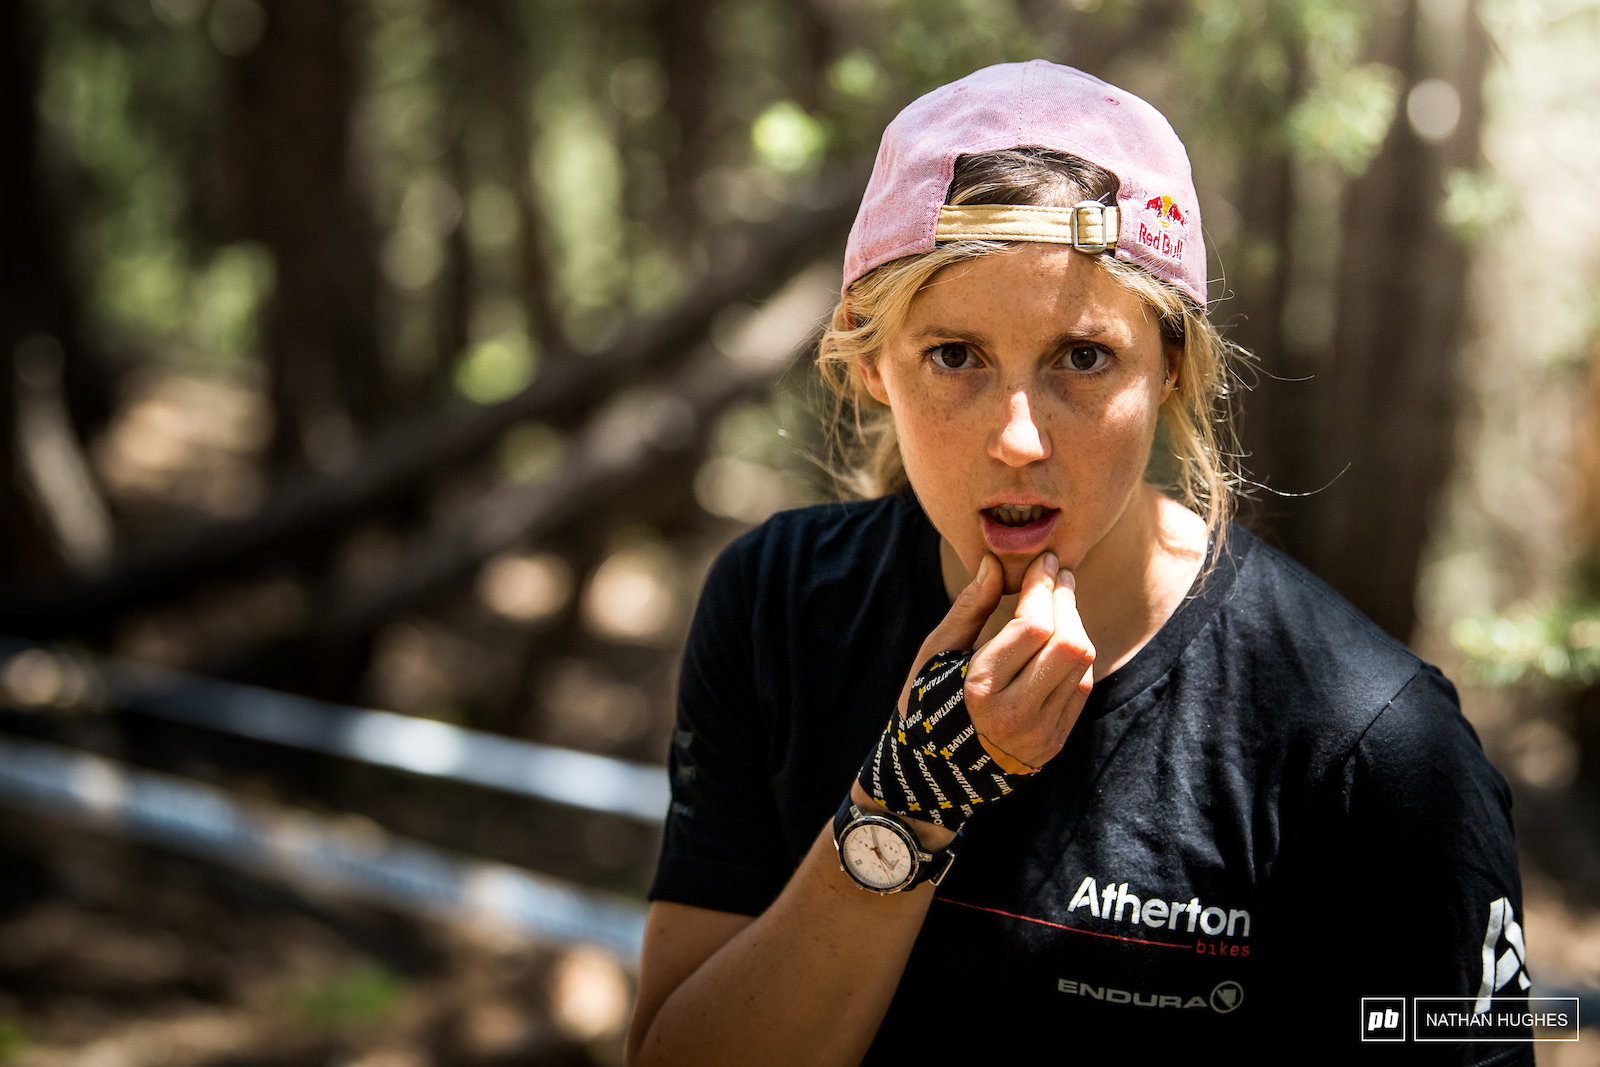 A taped hand and a look of line-choice induced fear from Rachel Atherton mid-track.